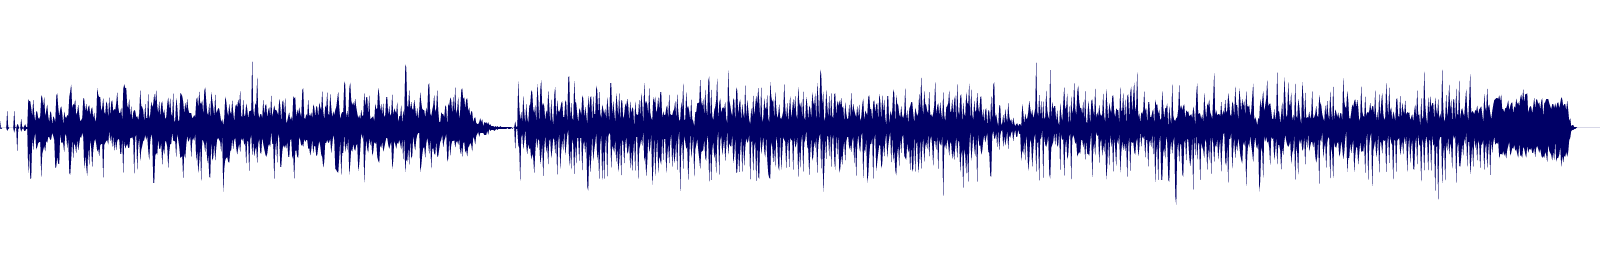 waveform of track #108348